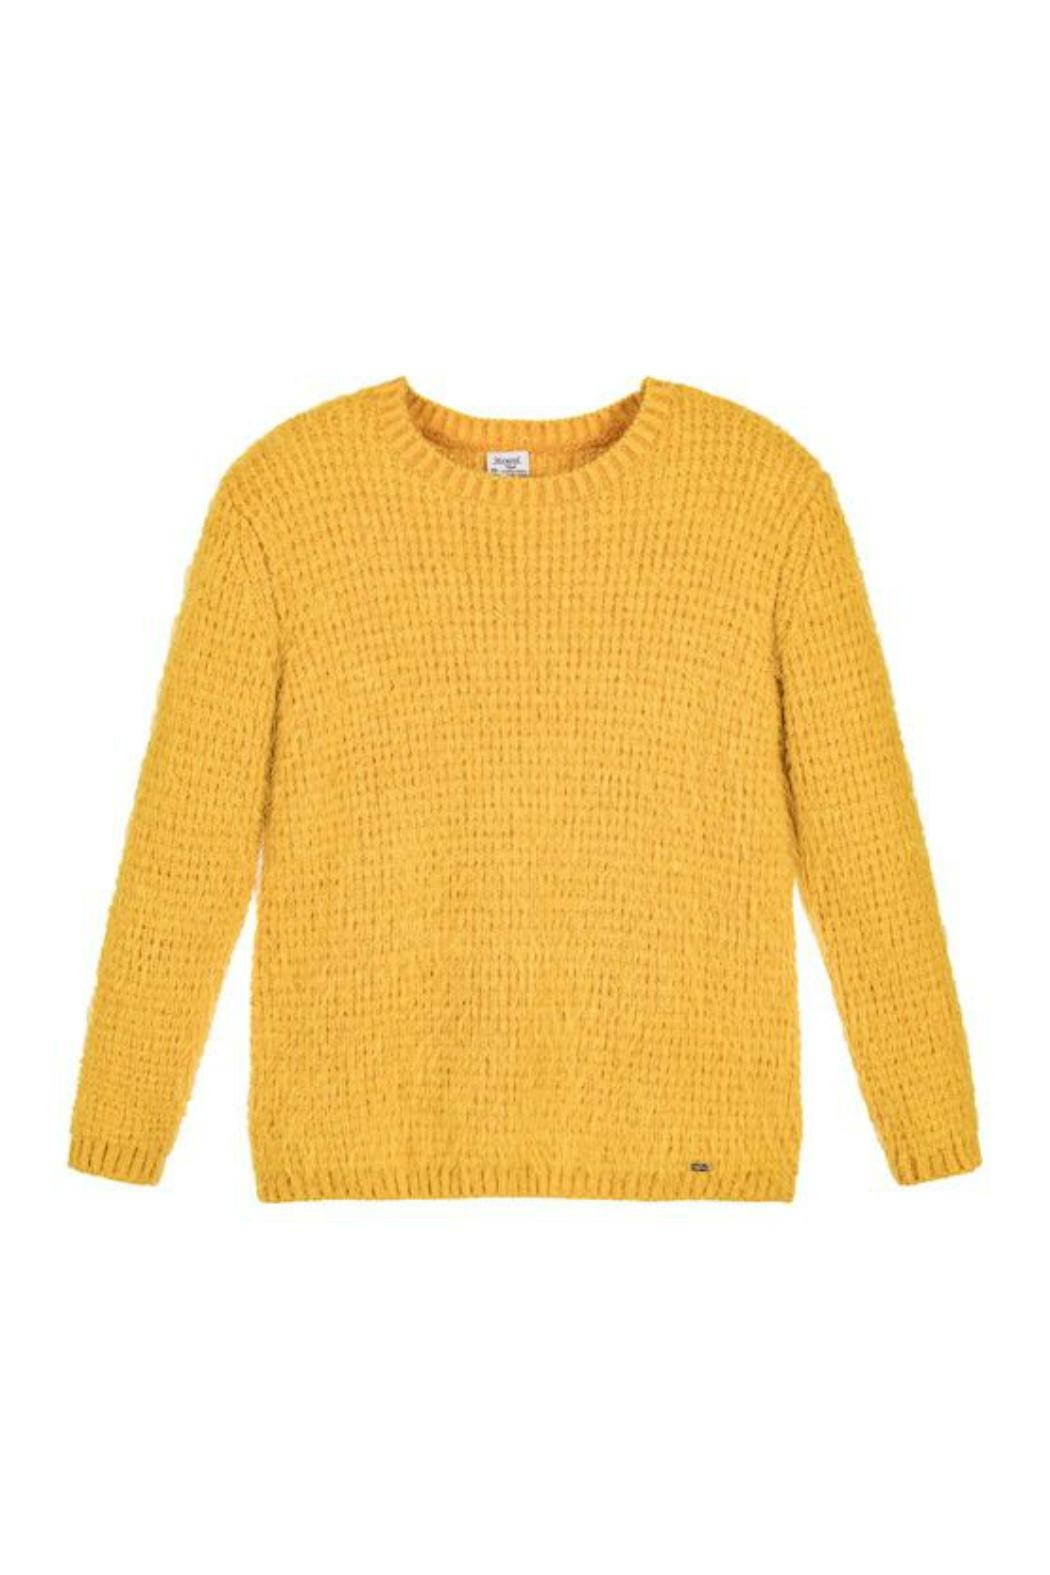 Mayoral Yellow Knitted Sweater from Canada by Studio Kidz — Shoptiques